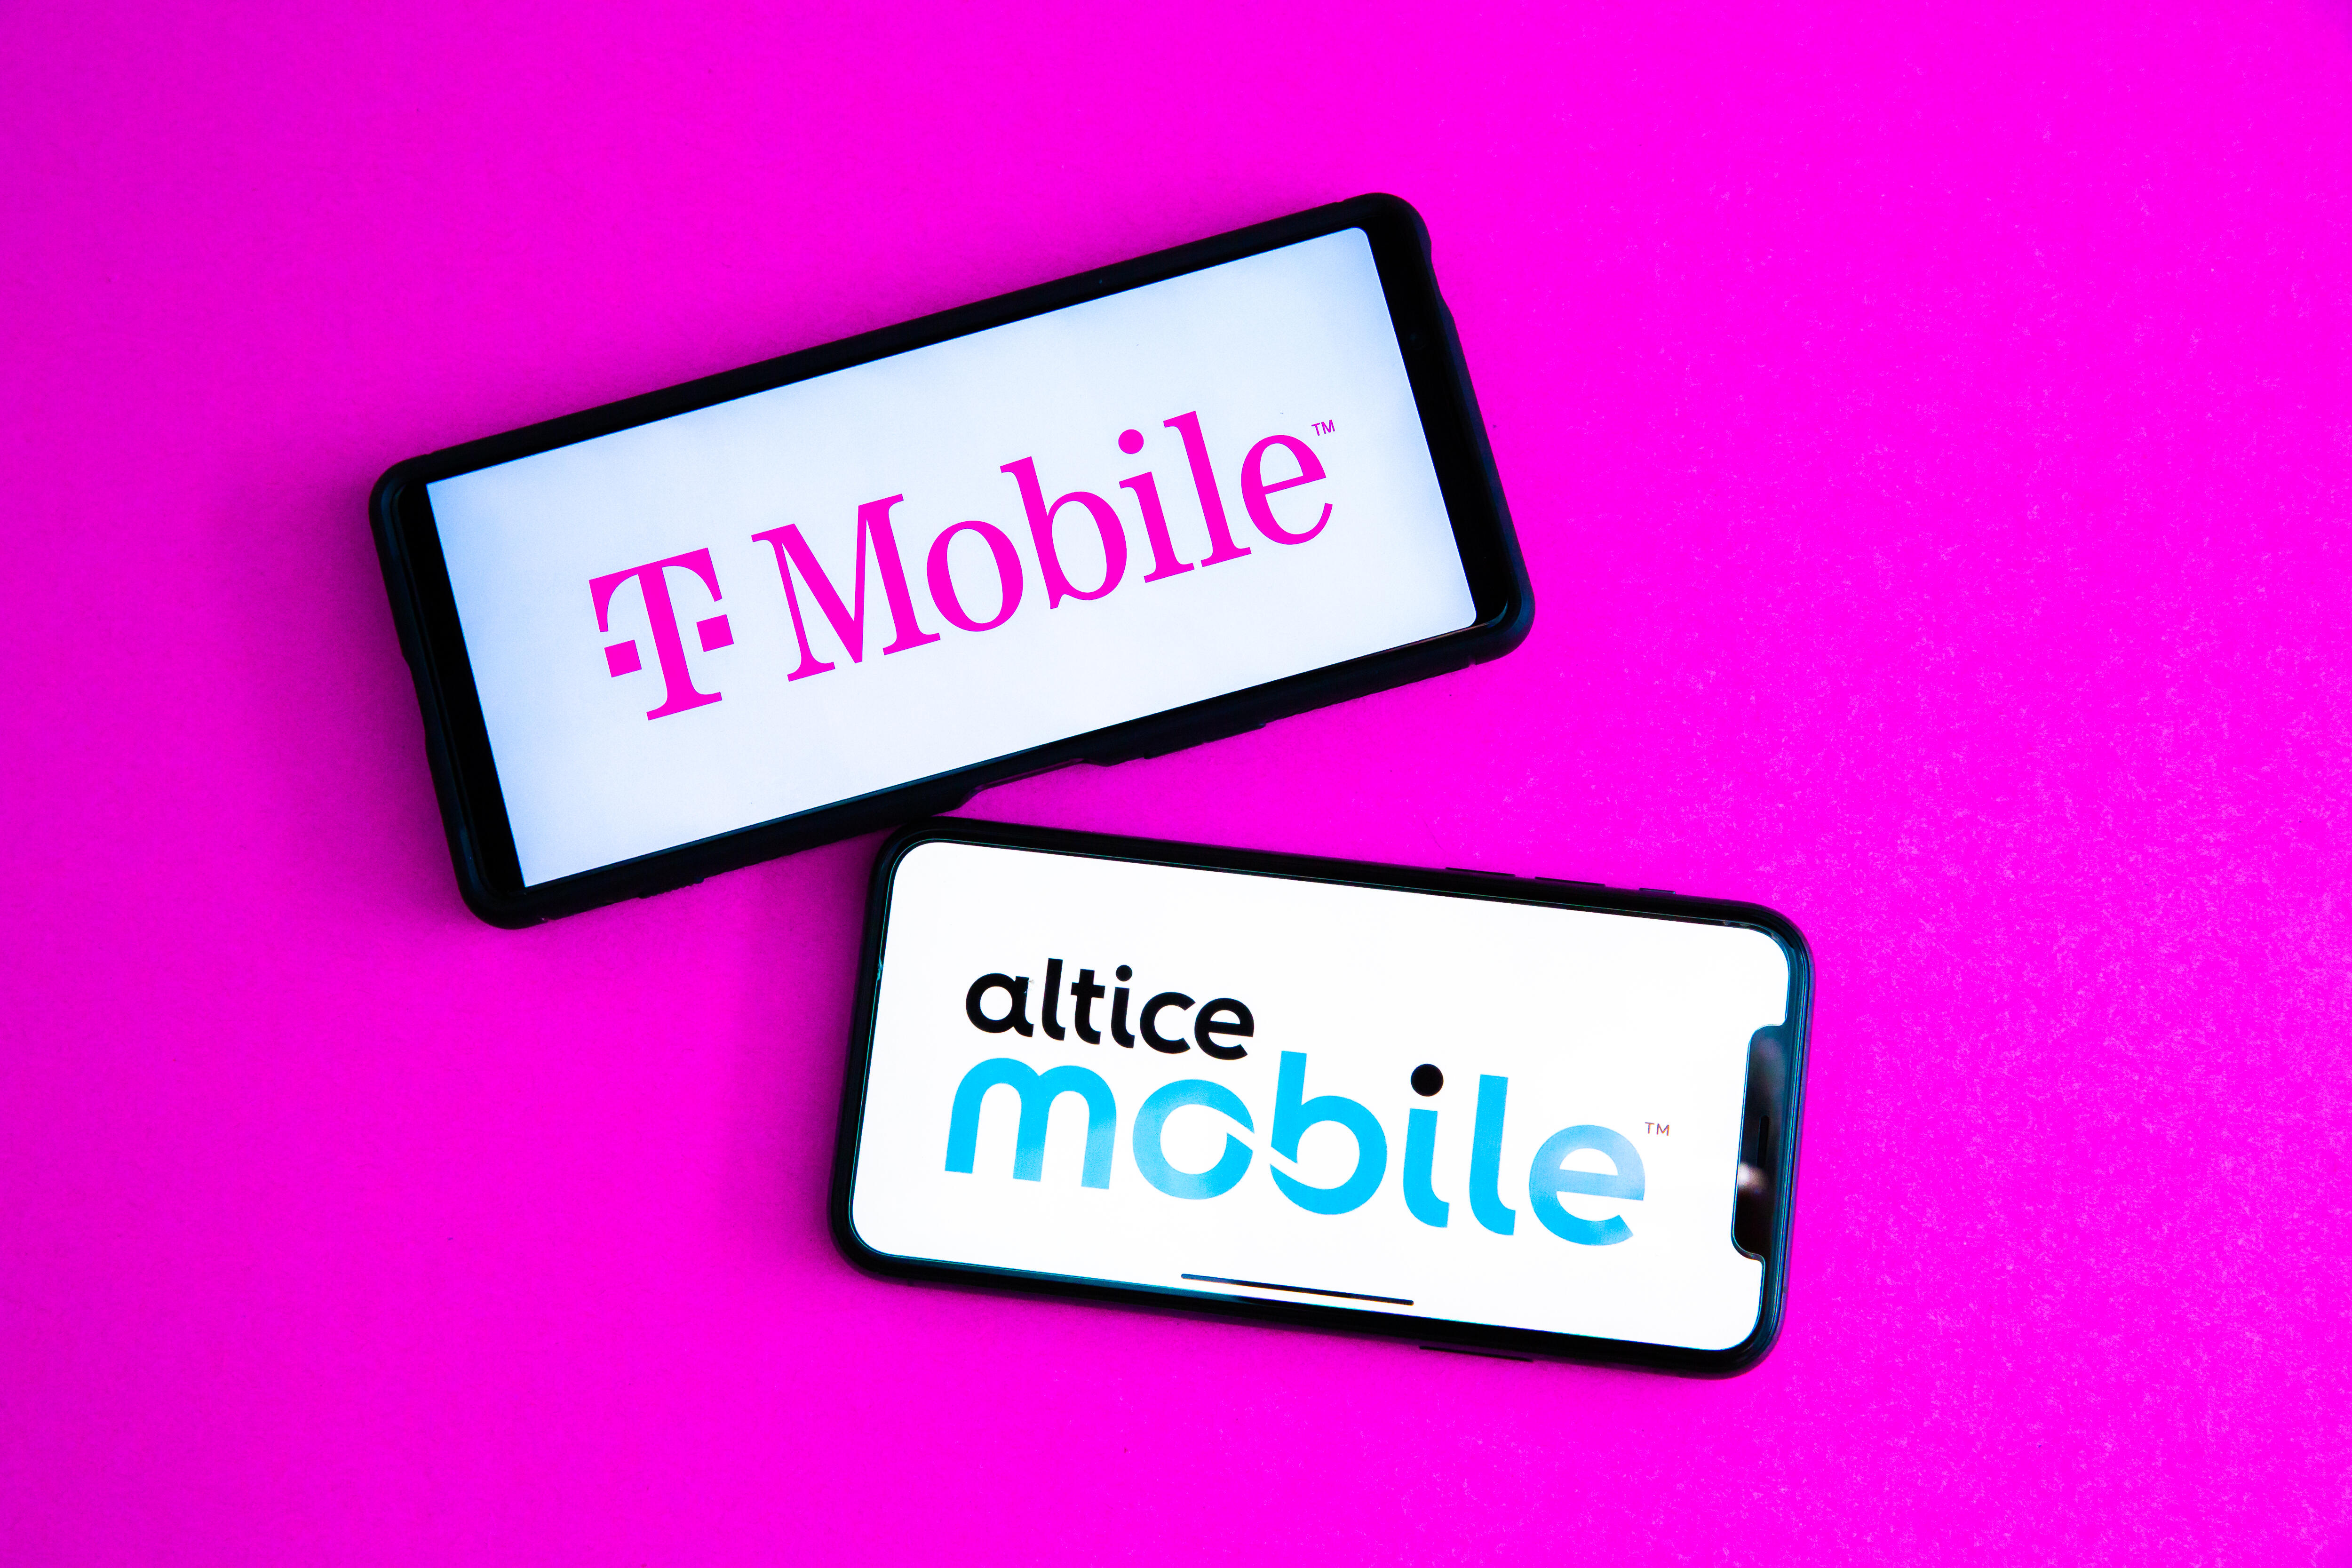 t-mobile-versus-altice-mobile-wireless-network-service-provider-review-cnet-2021-91